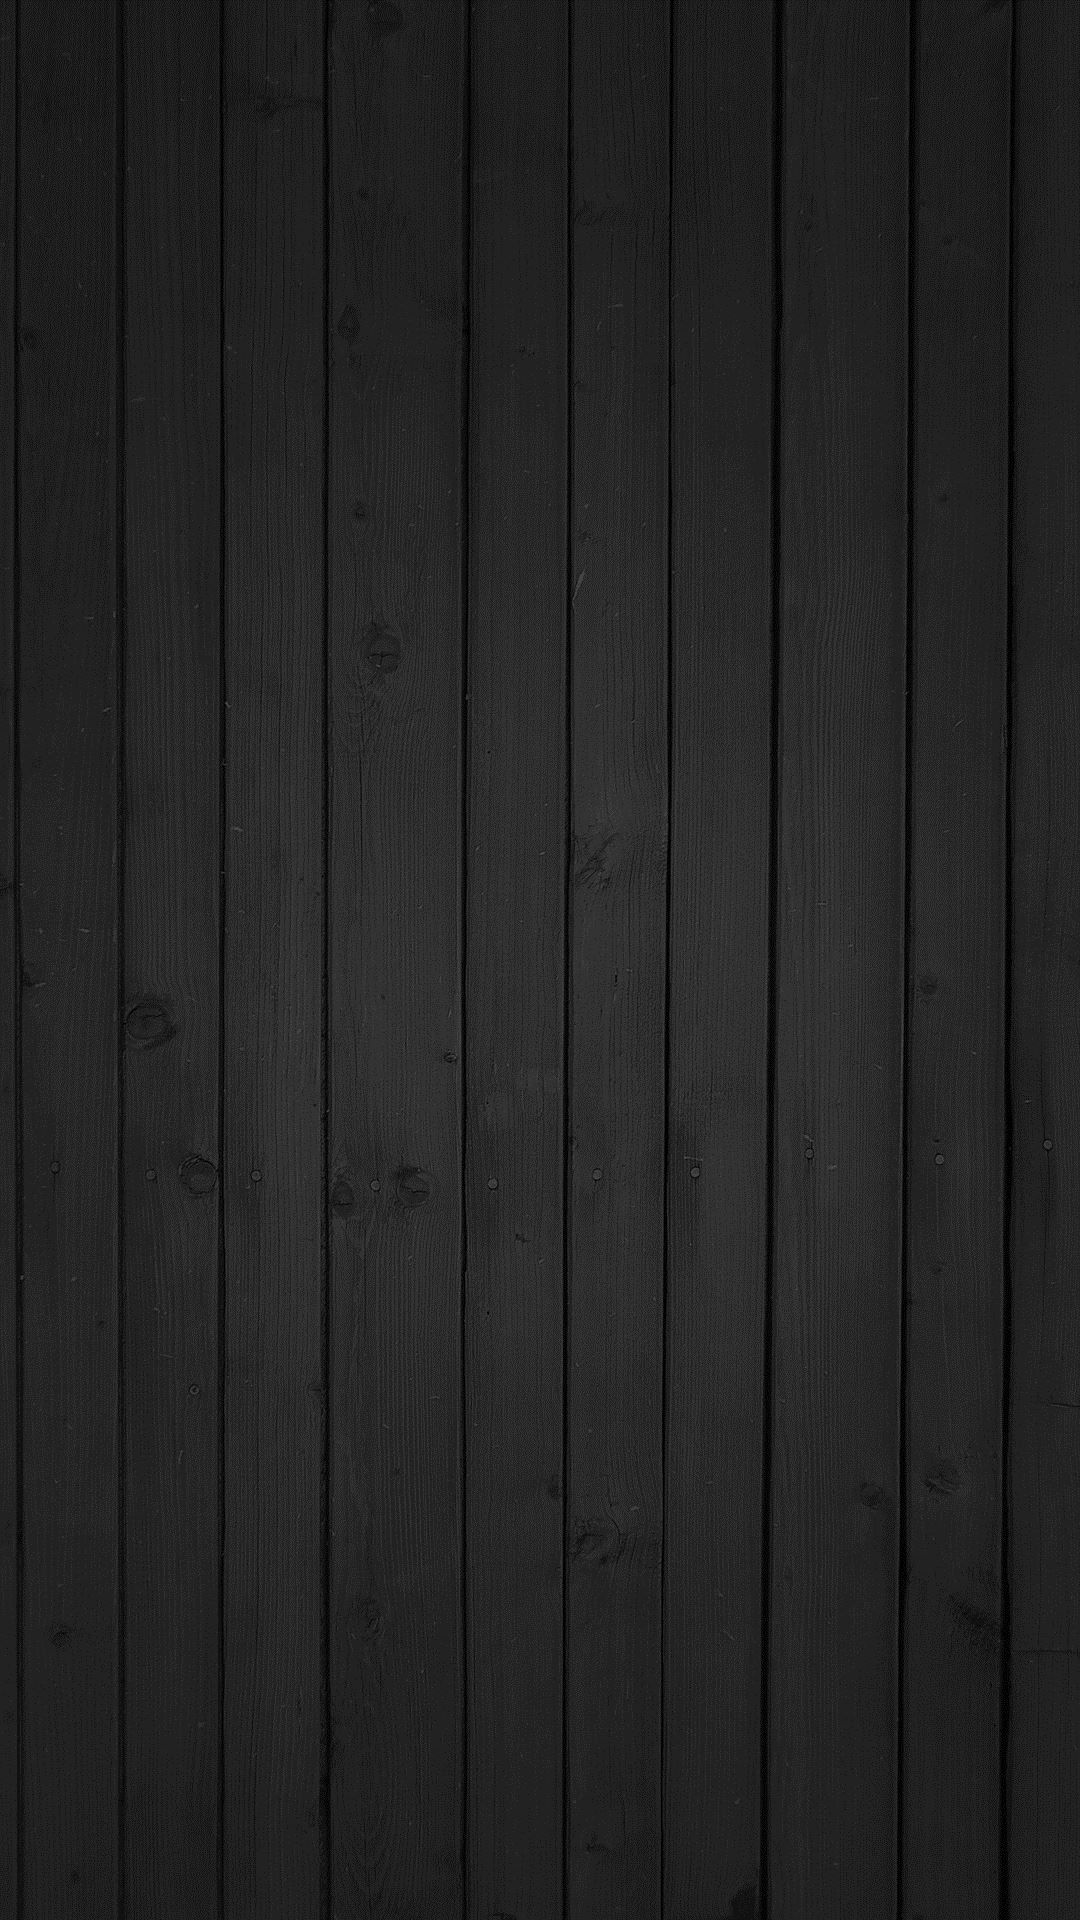 Get Cool Black Wallpaper Iphone Backgrounds Texture for iPhone 11 Pro Max This Month